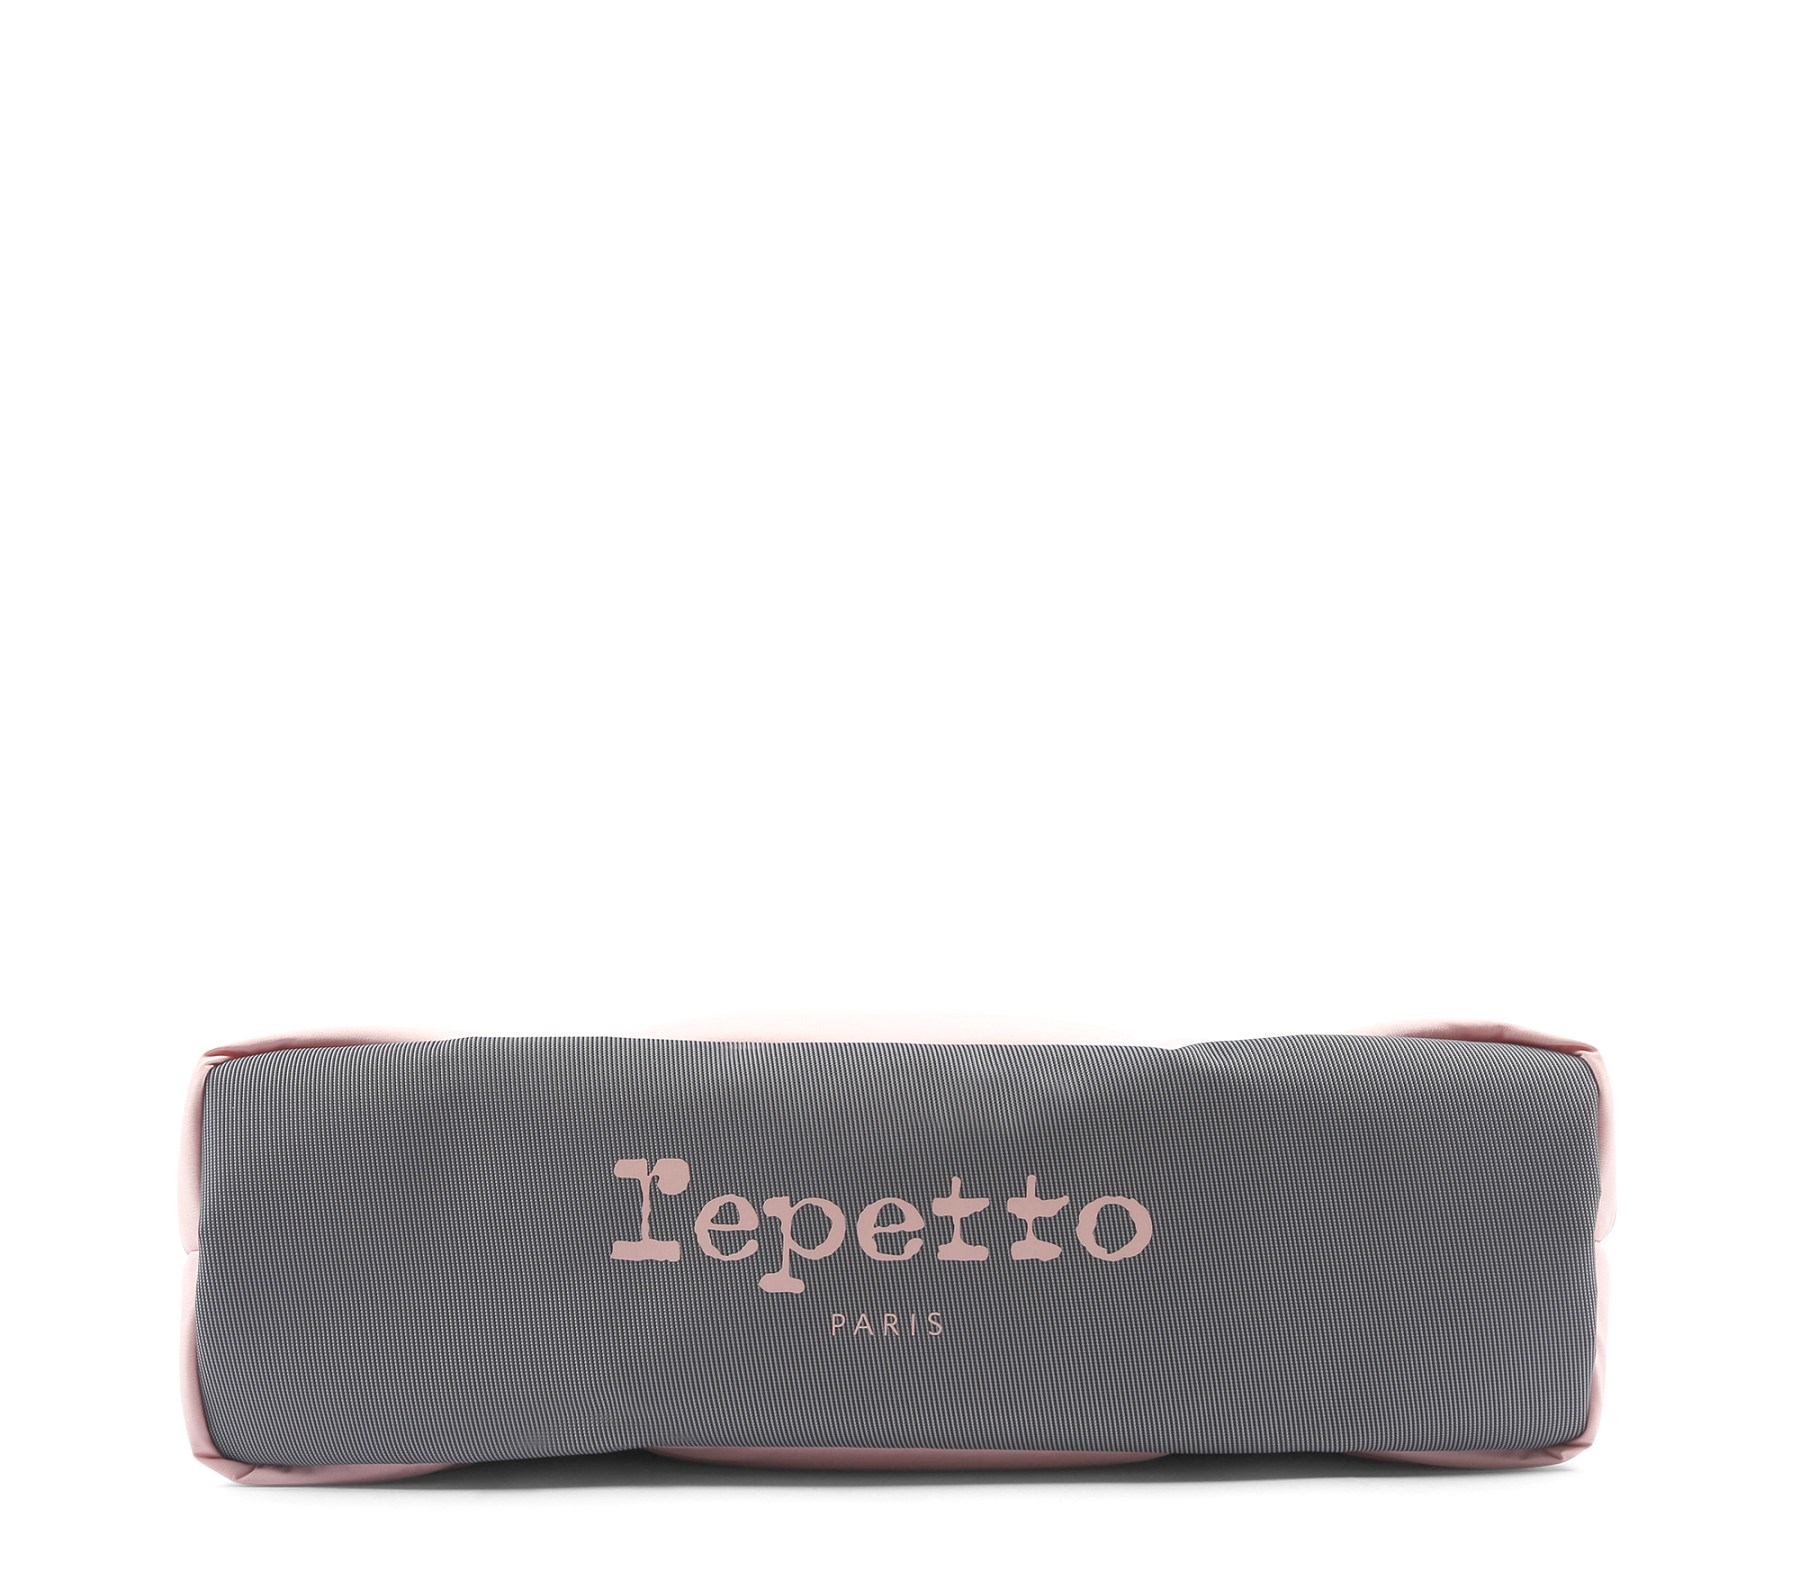 repetto Boots tote トートバッグ  B0296N